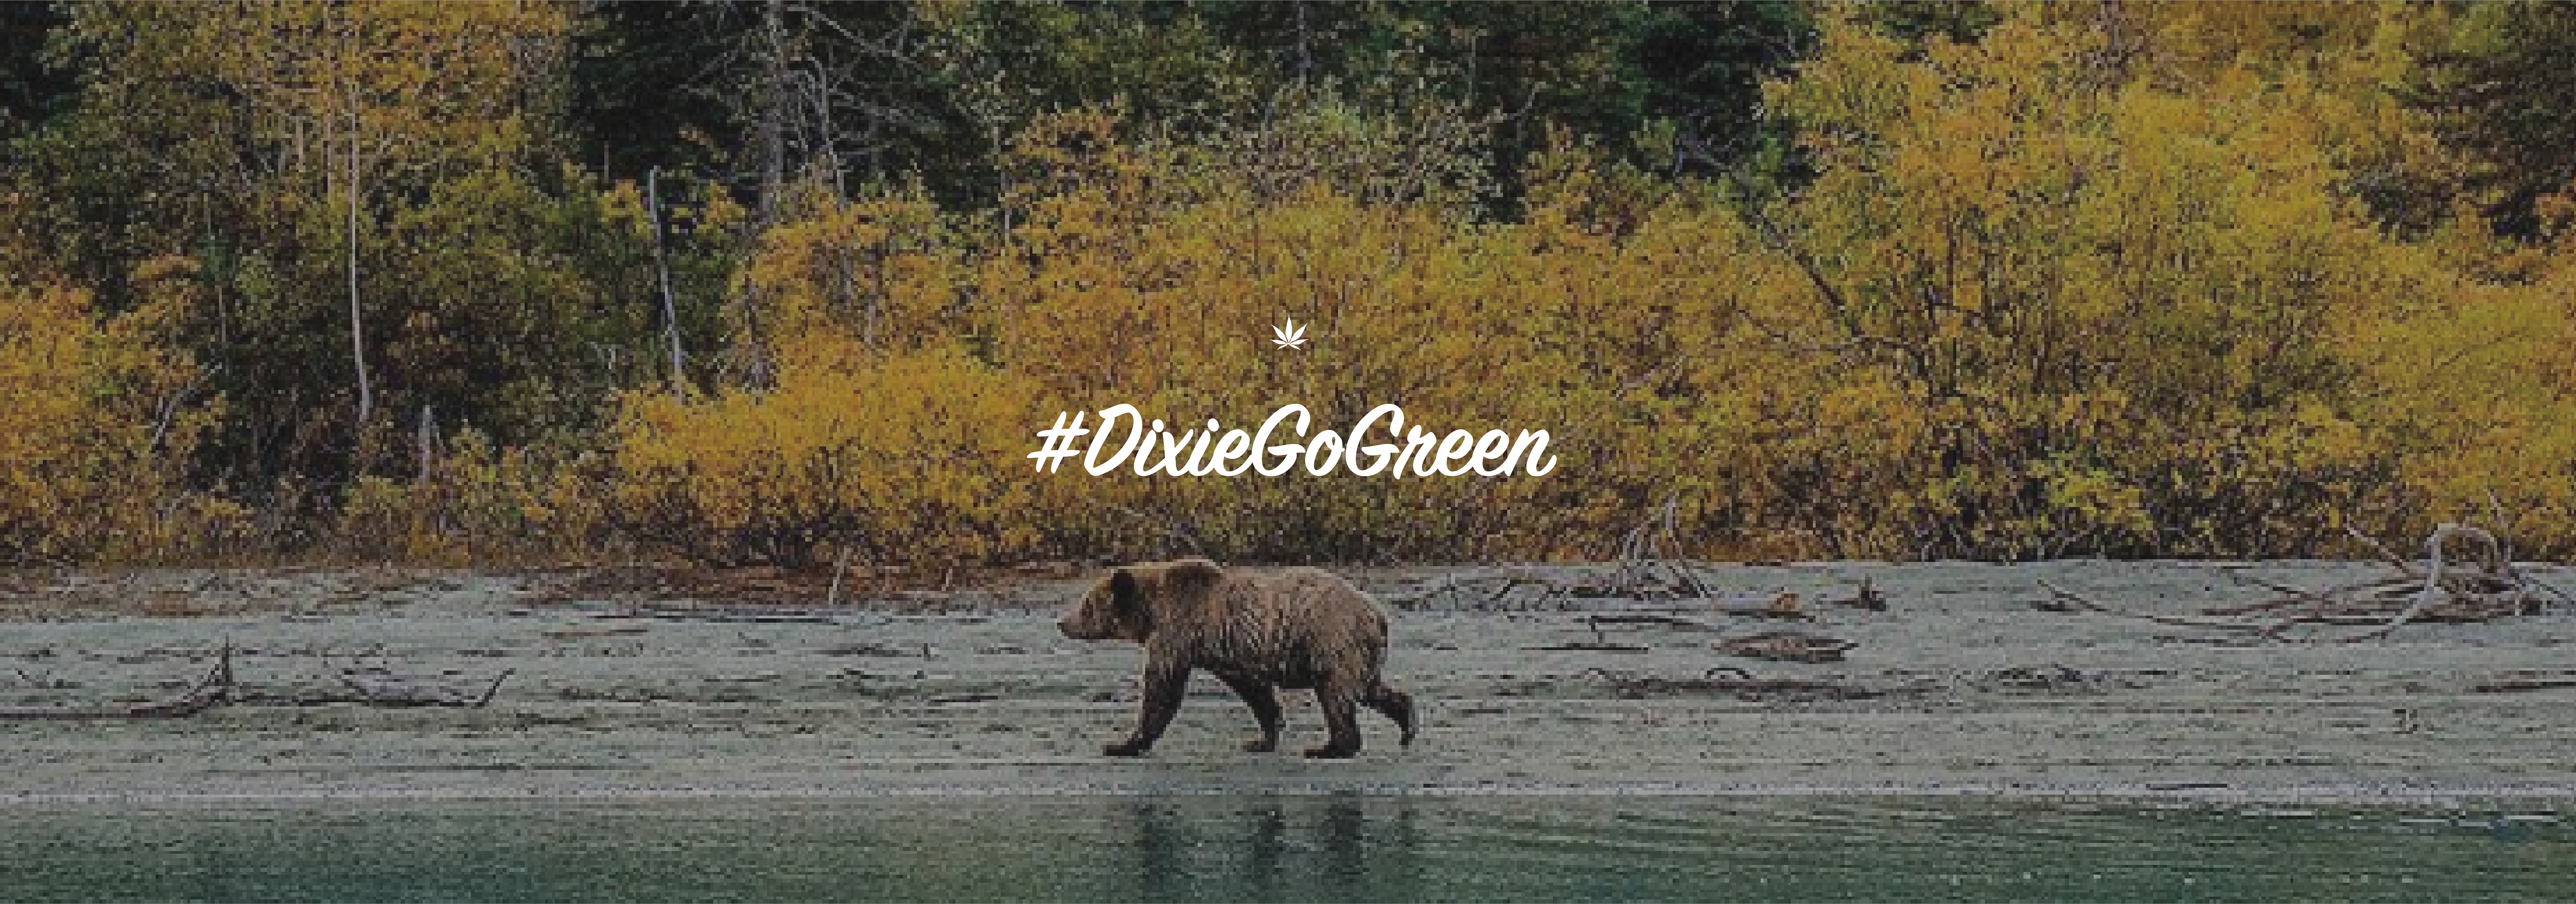 Dixie Go Green campaign for environmental sustainability